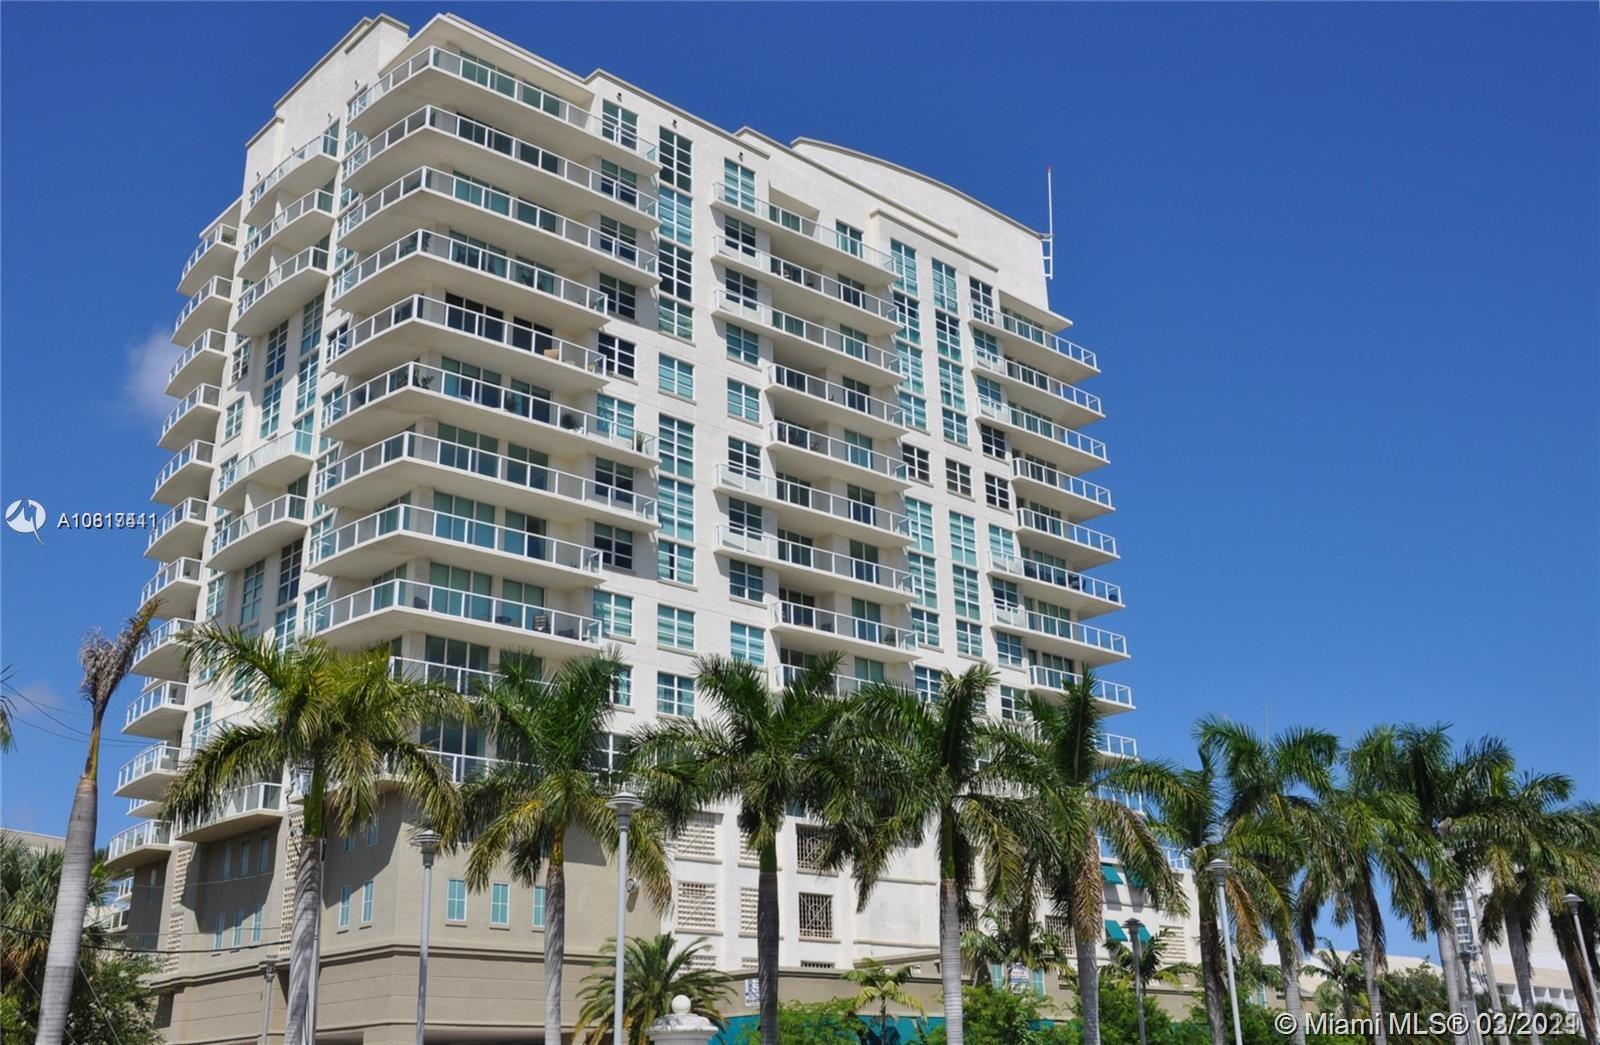 Motivated Seller!! Amazing location! Close to the ocean and the beaches, as well as Las Olas Blvd. This unit has spectacular sunset and city views, ideal location for boaters! The unit has been totally updated. The complex offers state of the art ammenities, including: 24/7 Sauna and Clubroom, concierge valet service, large extra storage space, and heated pool. This unit will not last! Unit is currently rented for $2,550 until January 31, 2022.